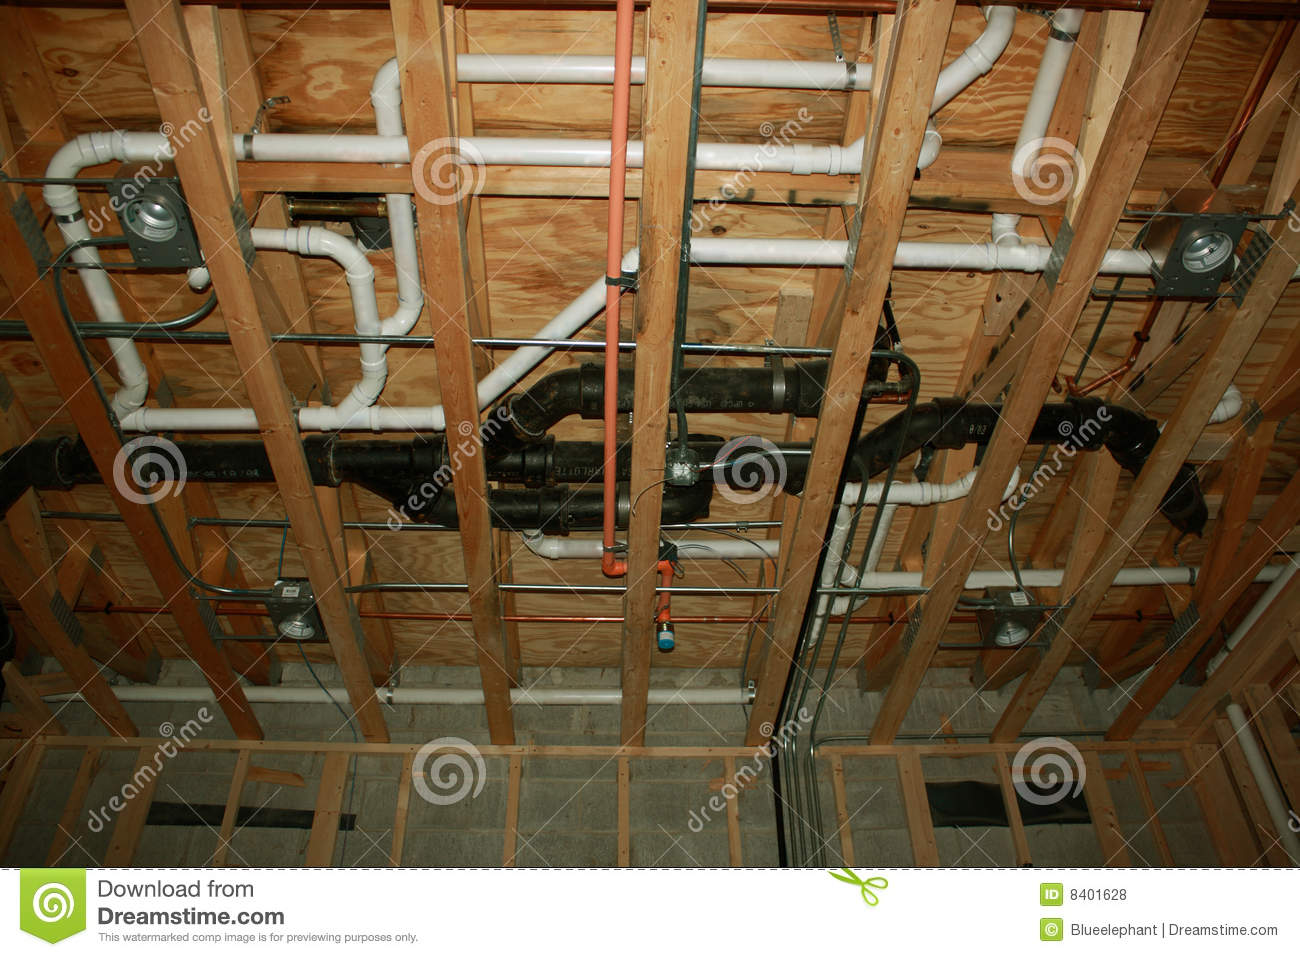 Plumbing new construction royalty free stock photos for New construction plumbing